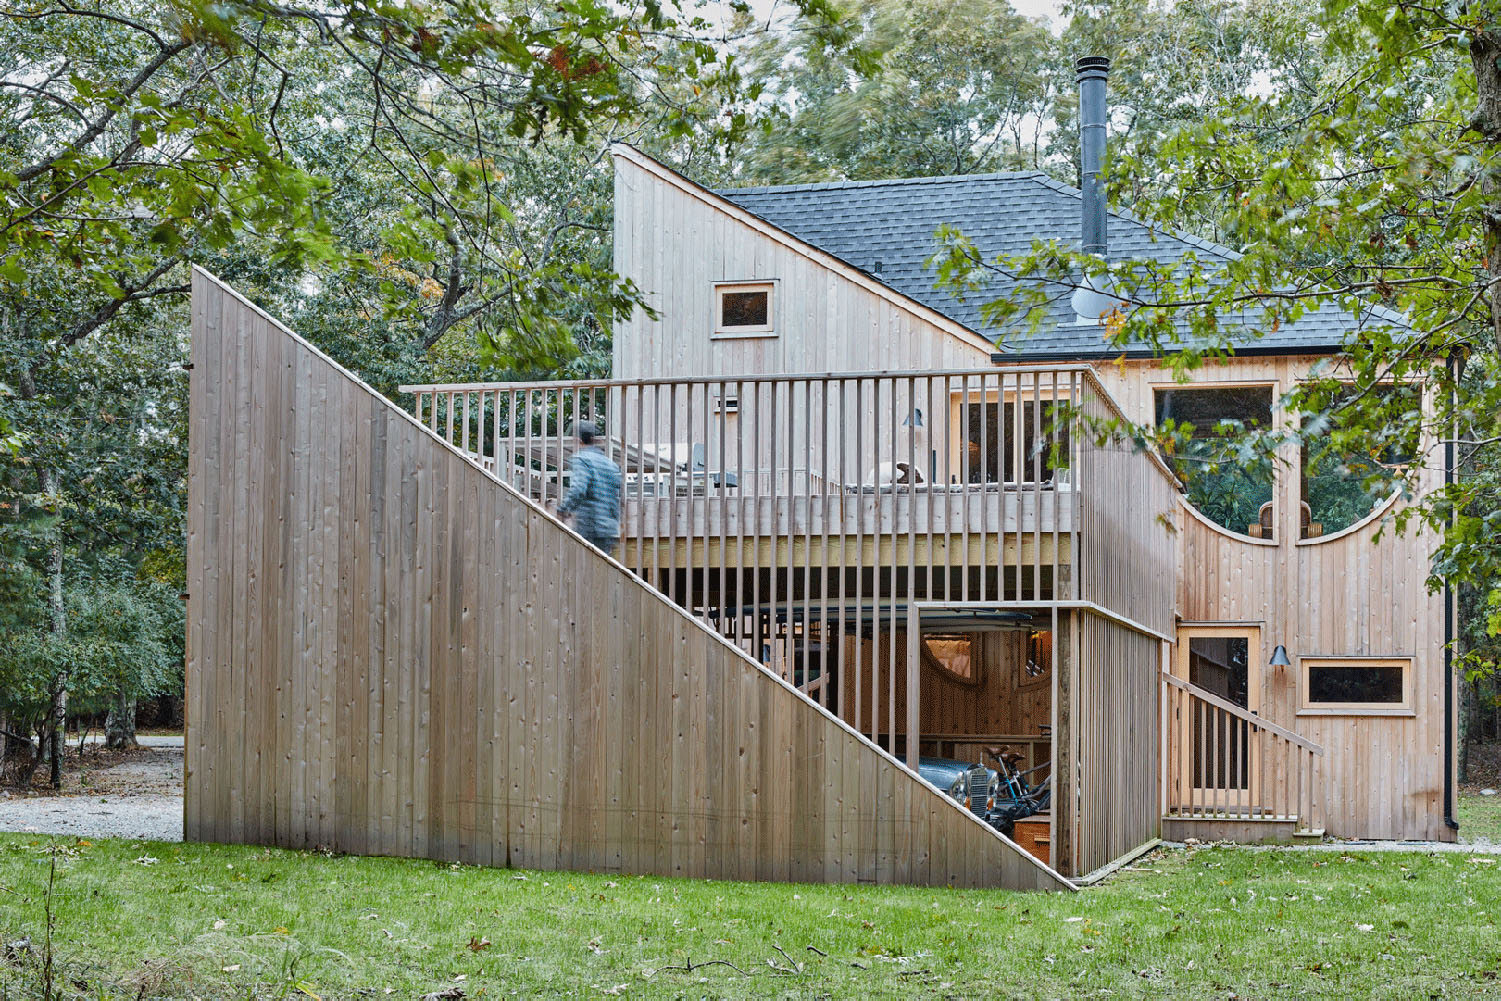 Wooden building with surrounding landscape designed by Andrew Geller